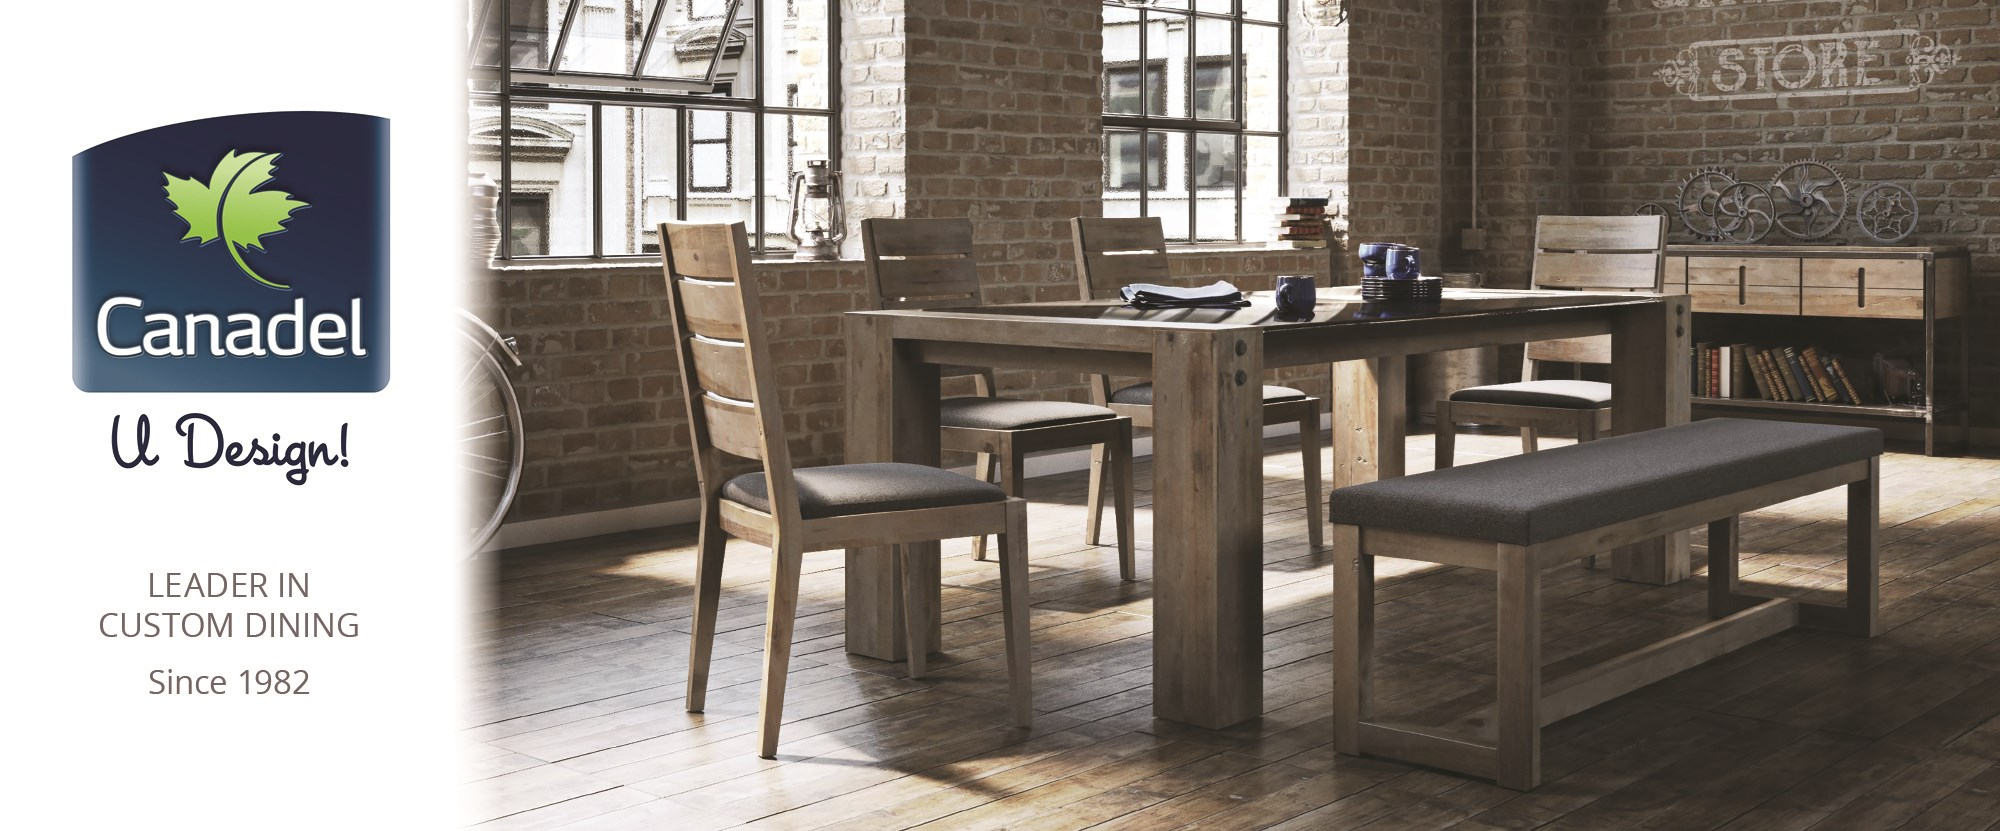 Canadel Custom Dining Furniture At Darvin